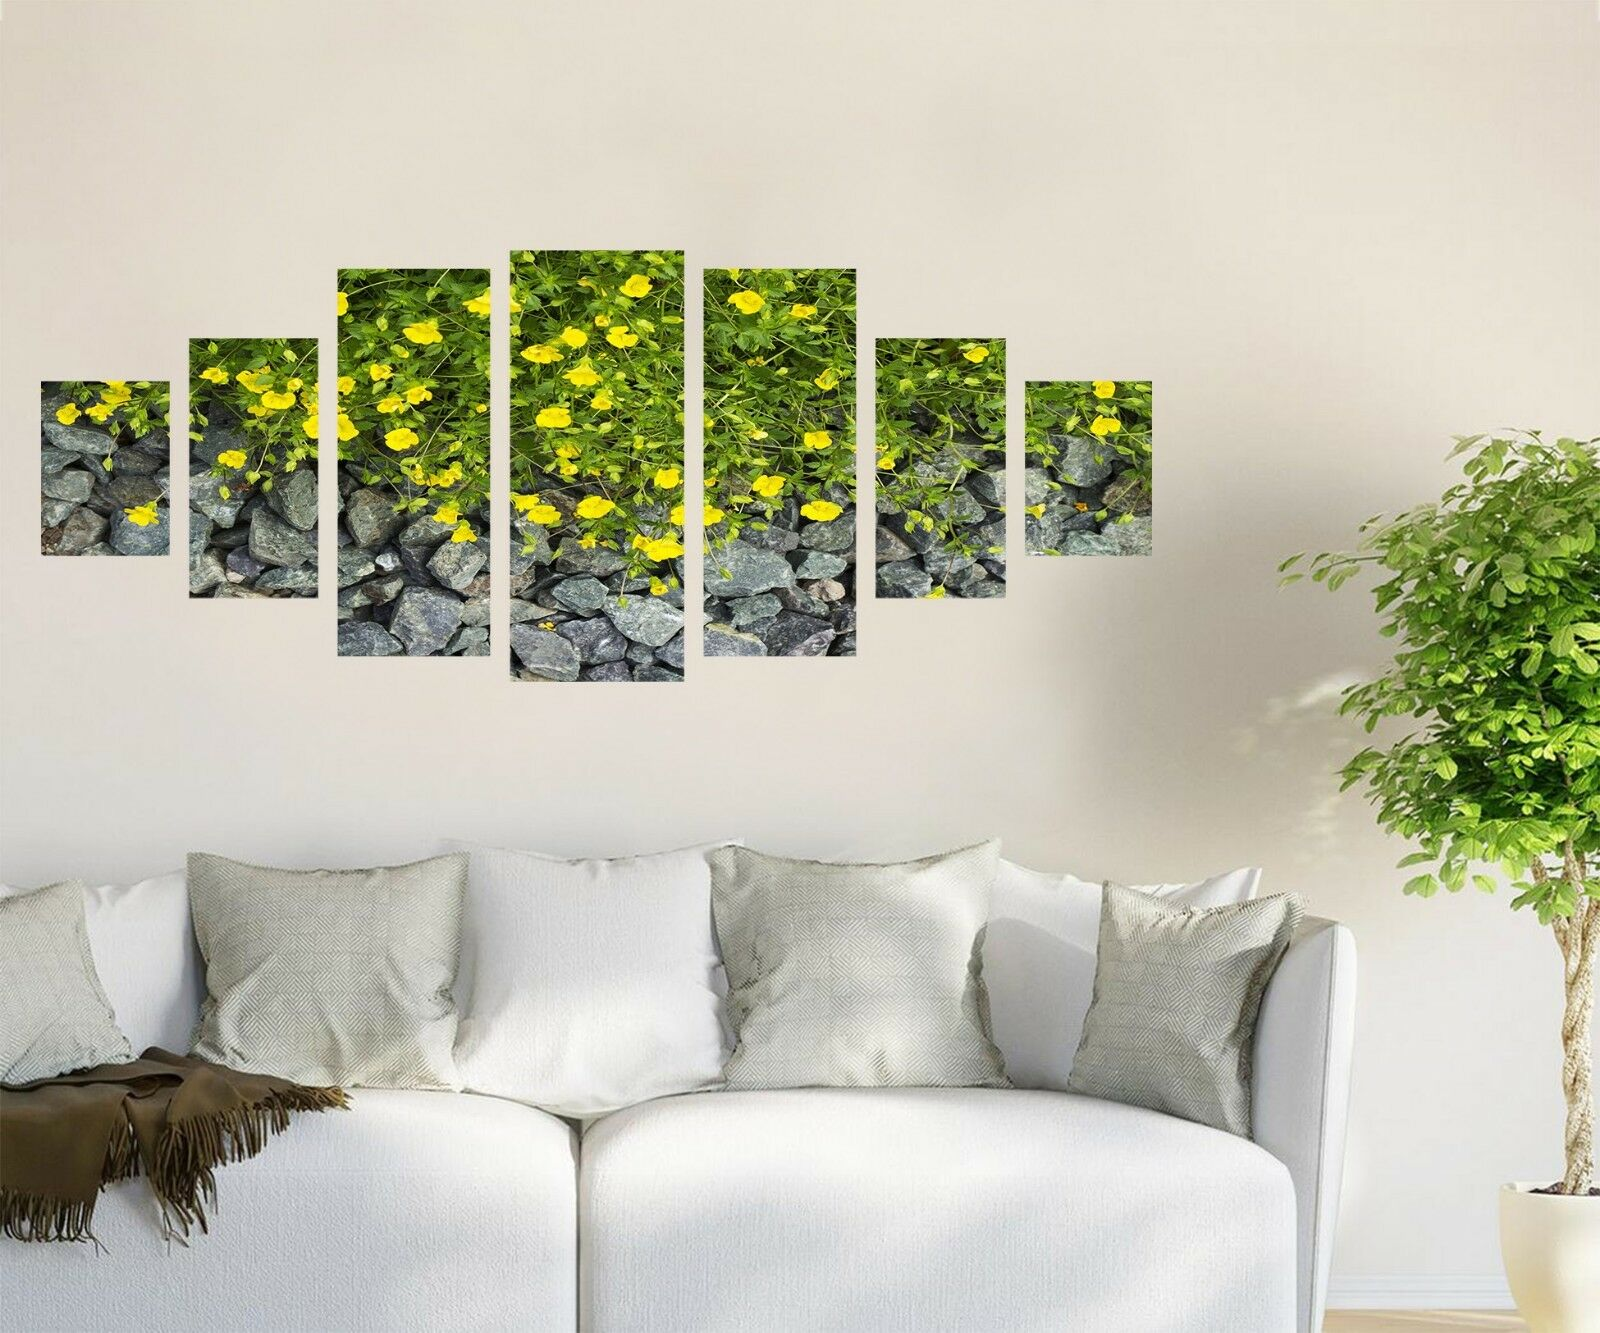 3D Flowers Spring 564 Unframed Drucken Wand Papier Decal Wand Deco Innen AJ Wand